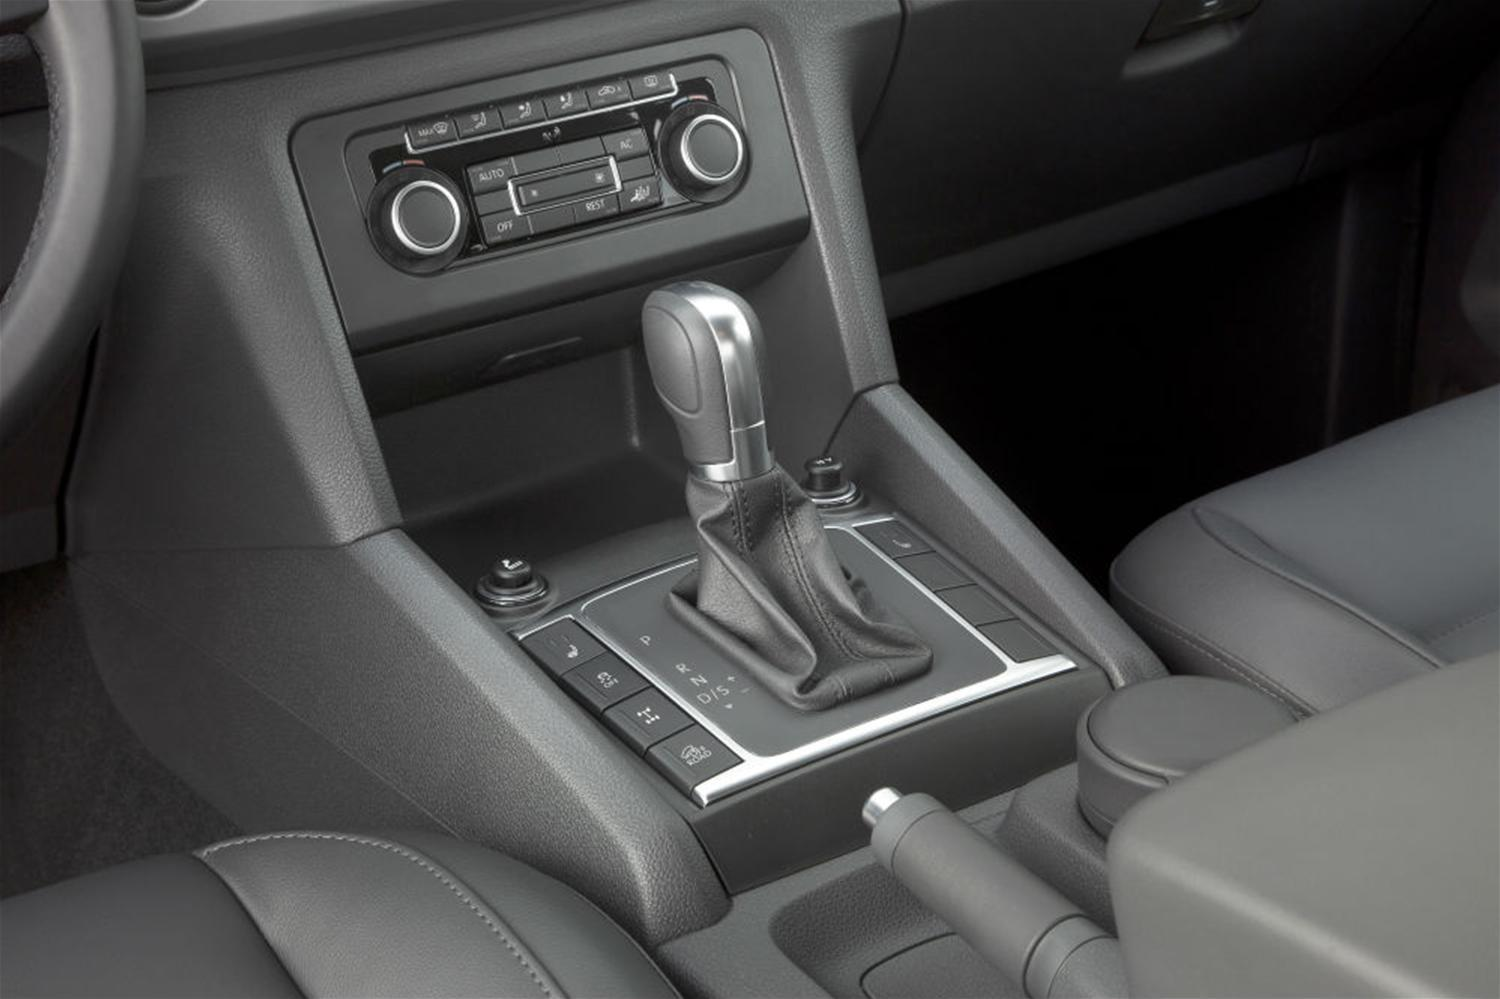 Manual or Automatic transmission?